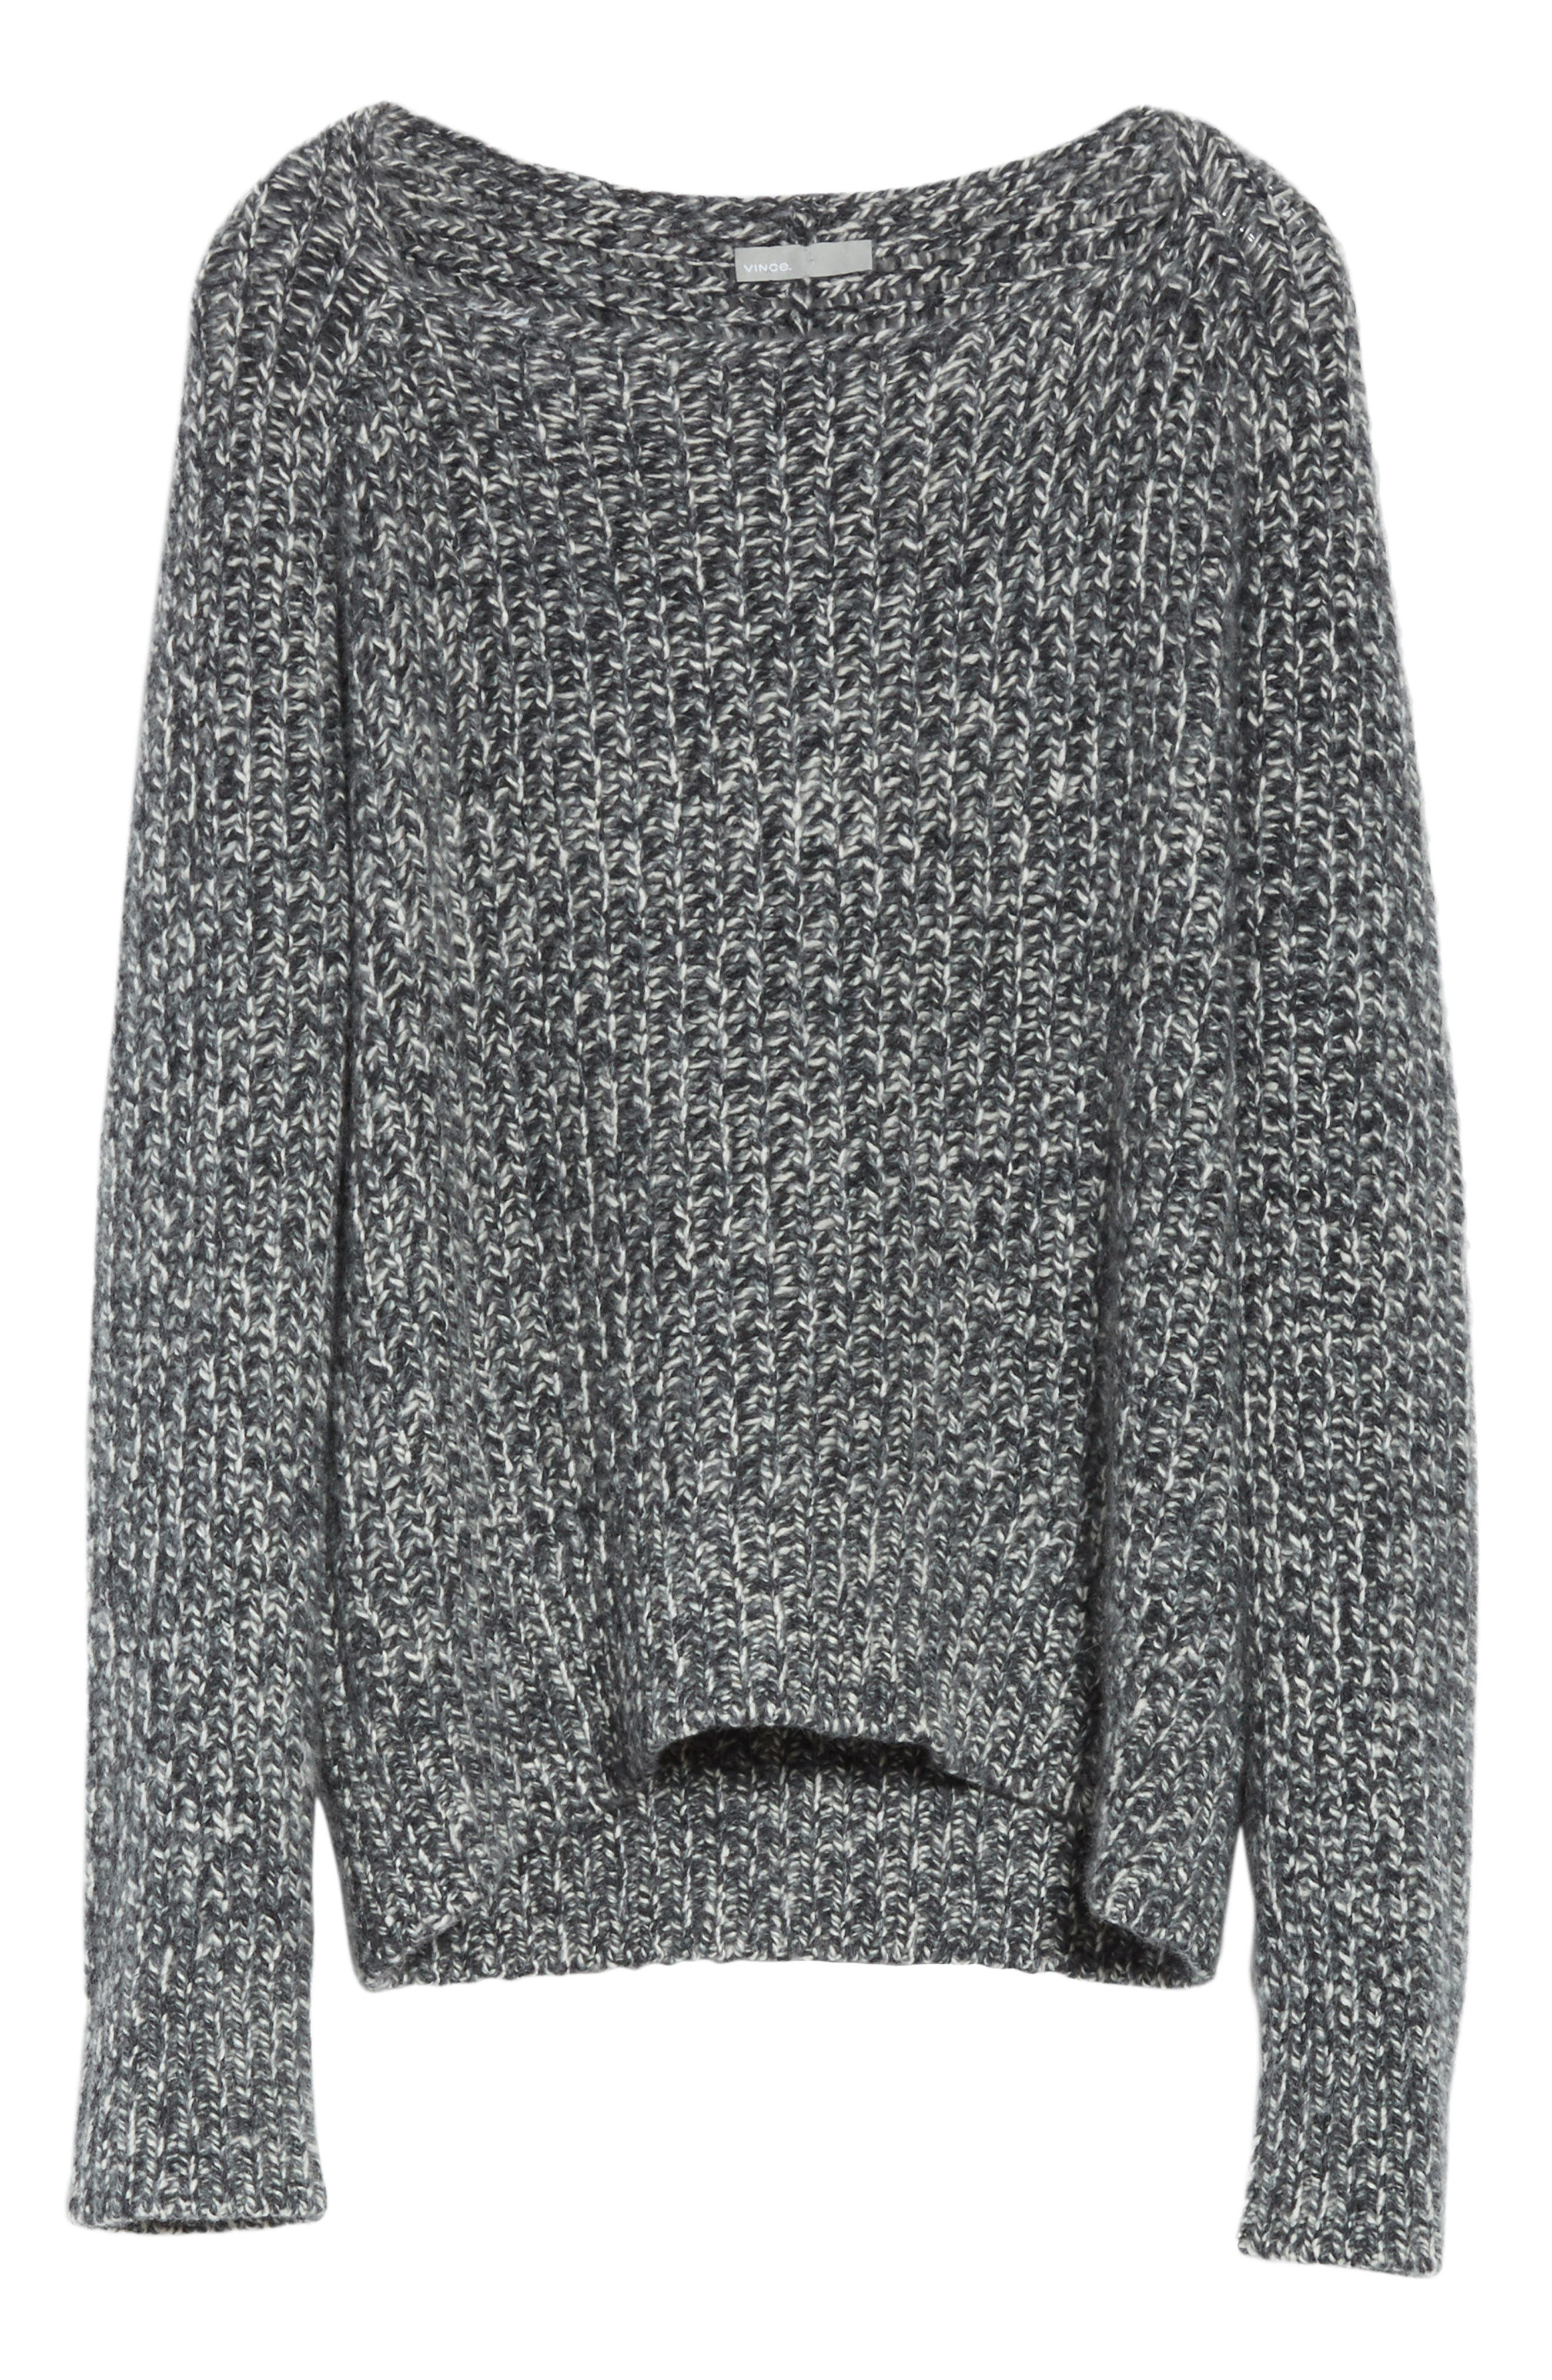 Marled Wool Blend Sweater,                             Alternate thumbnail 5, color,                             Grey